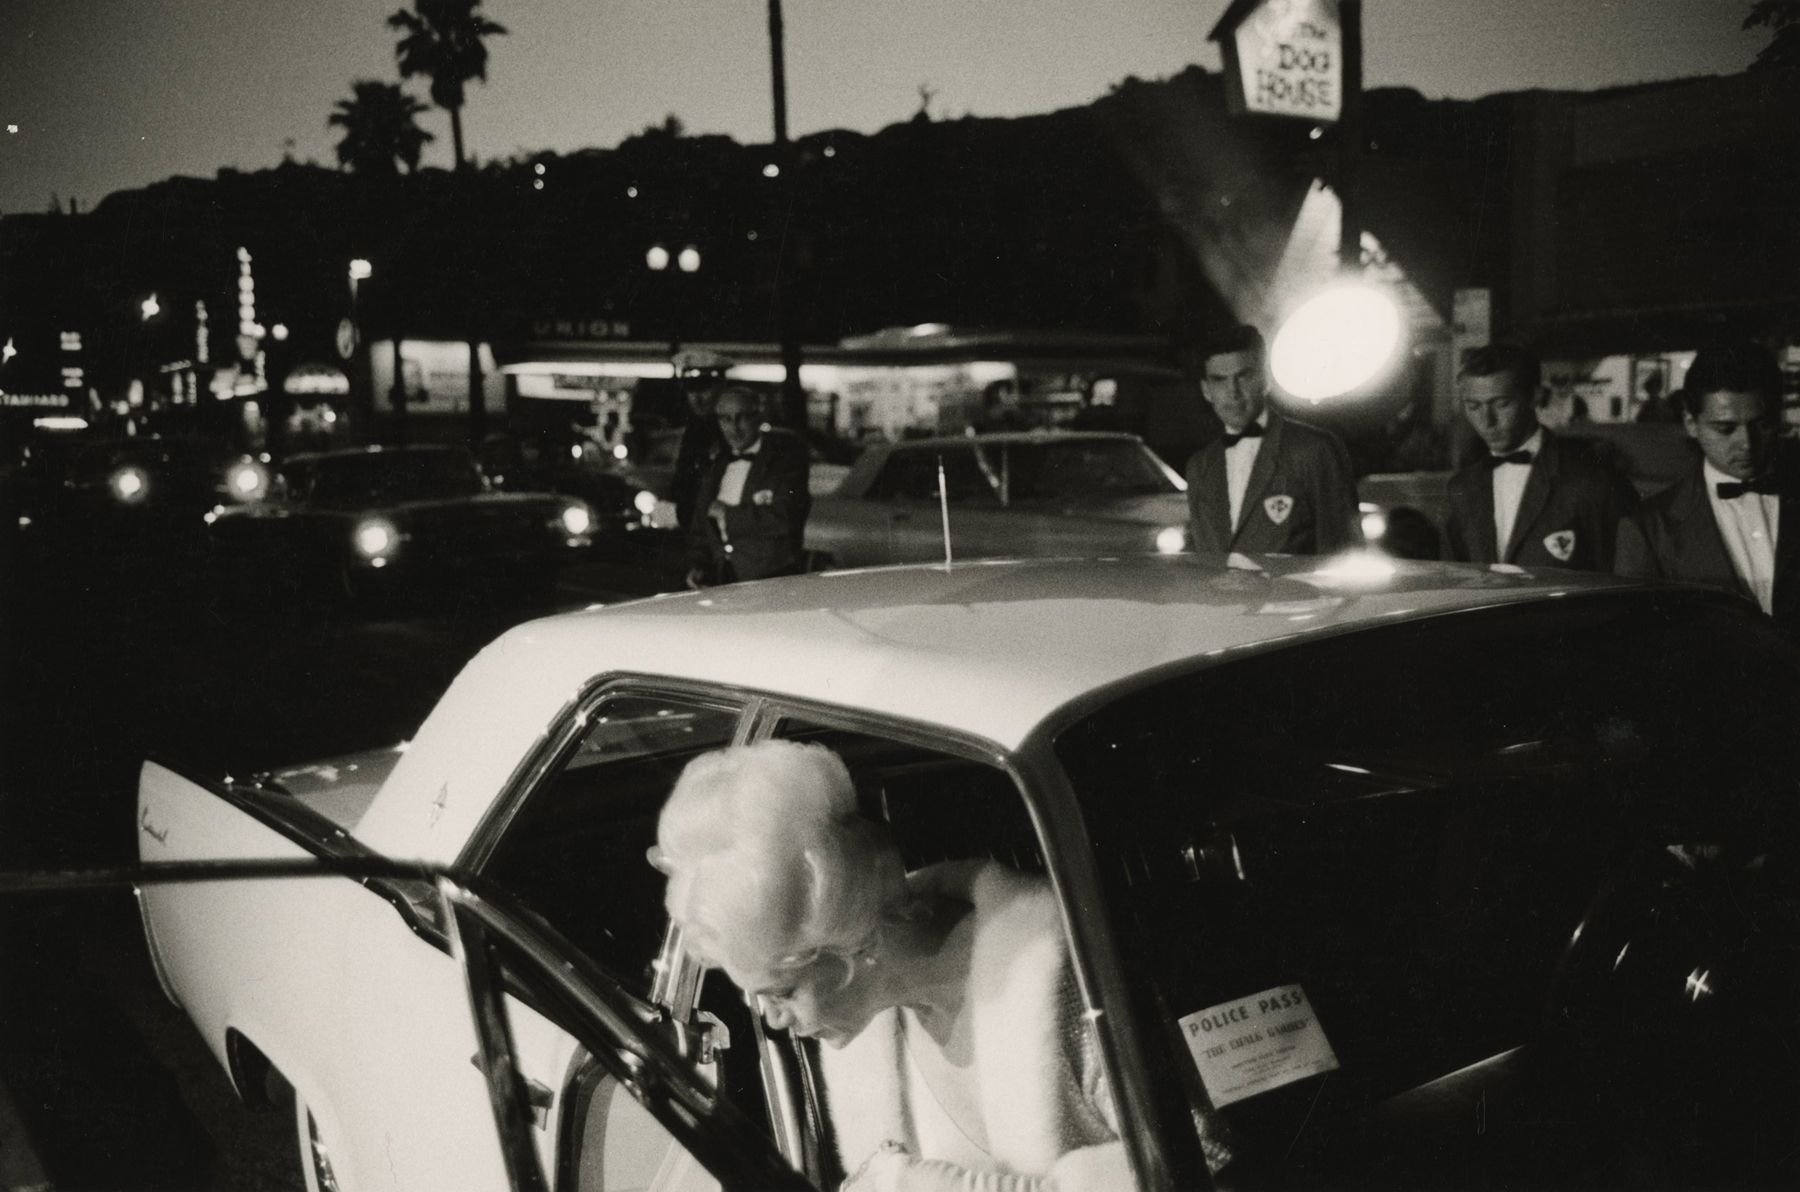 Bruce Davidson - An Affluent Woman Getting Out of a White Car in Hollywood, Los Angeles, California, 1960s - Howard Greenberg Gallery - 2018